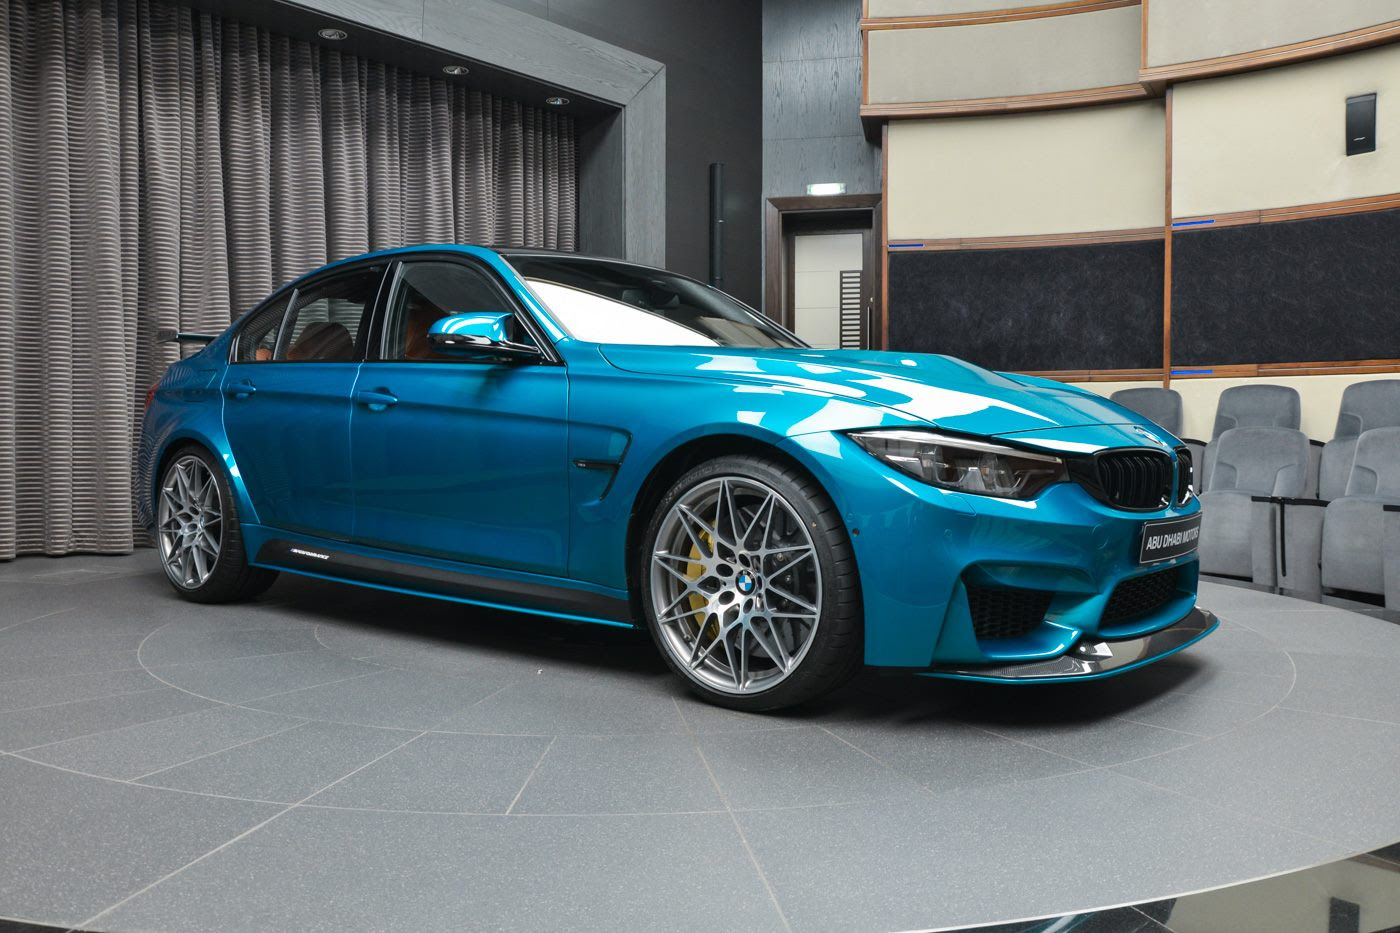 Alpine White Bmw M3 Gets Subtly Modified Bmw Vision Hyundai Racing Lexus Is Blogspot Com